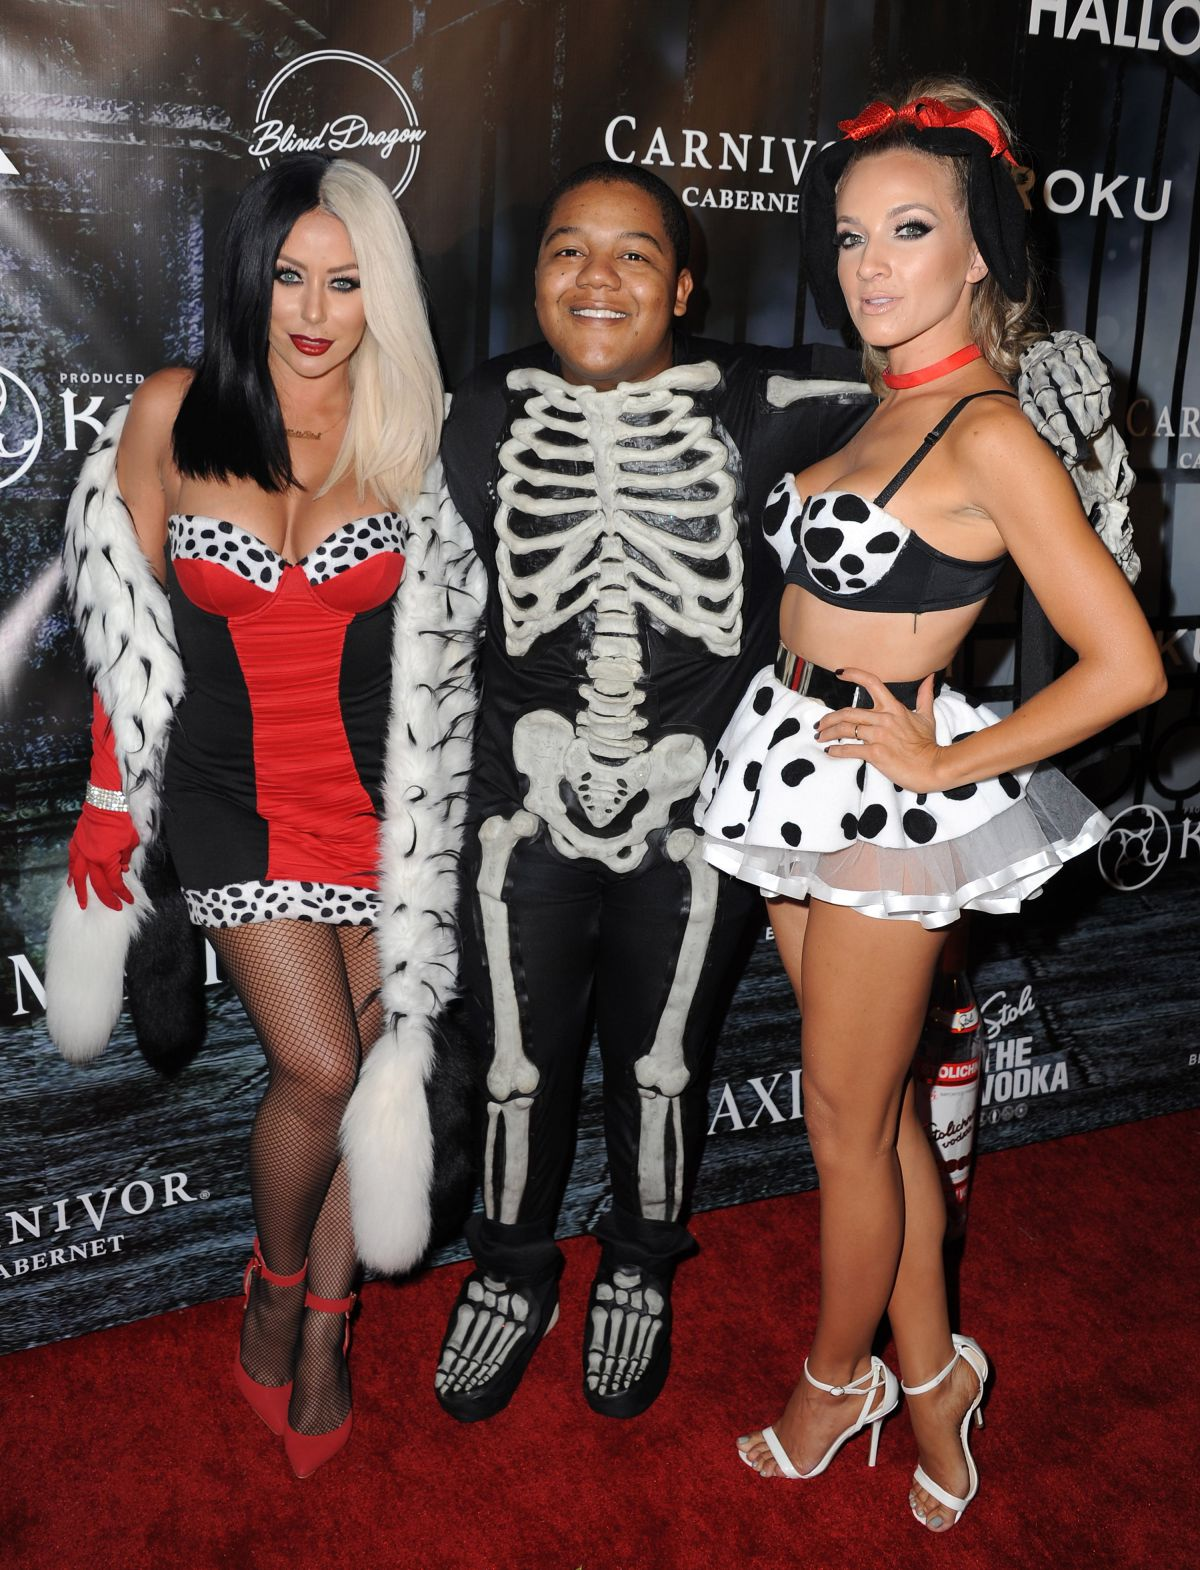 SHANNON BEX at Maxim Magazine's Official Halloween Party in ...